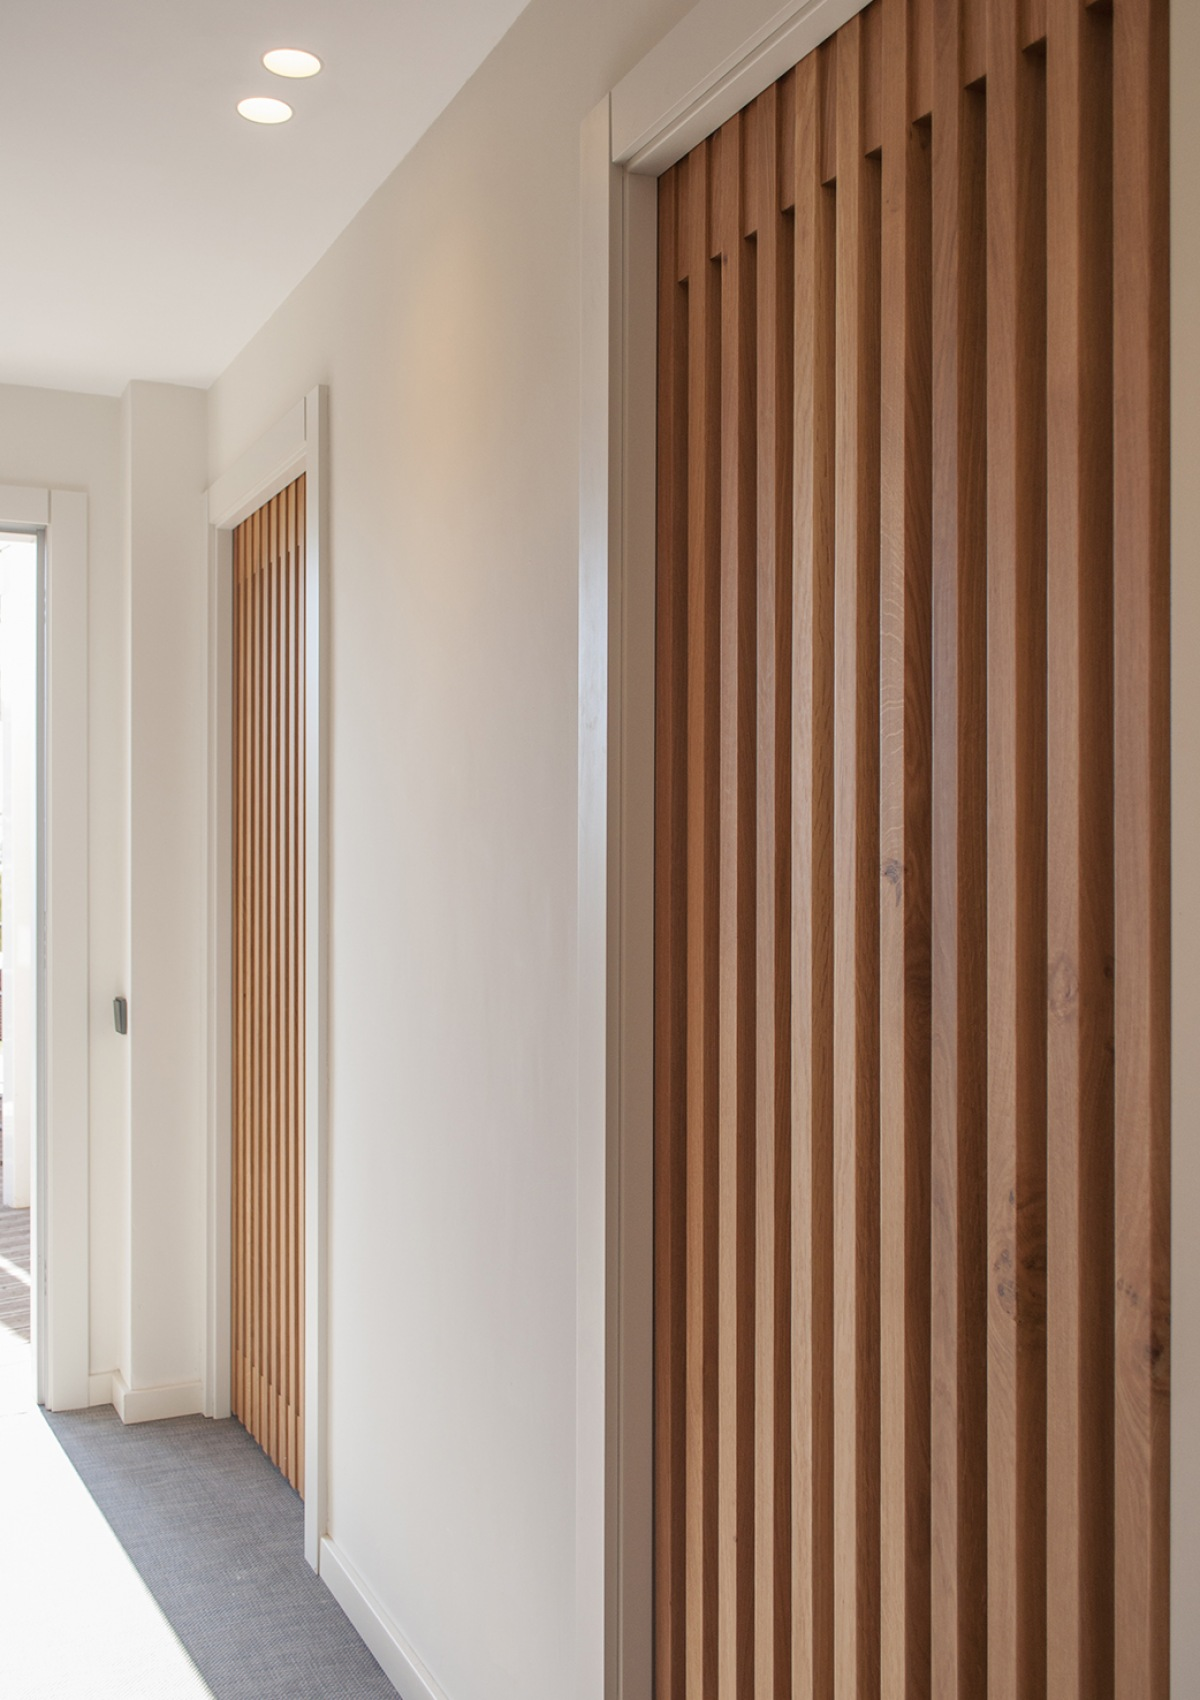 5-architecture-sitges-interior-design-barcelona-doors-wood-modern-desing-lights